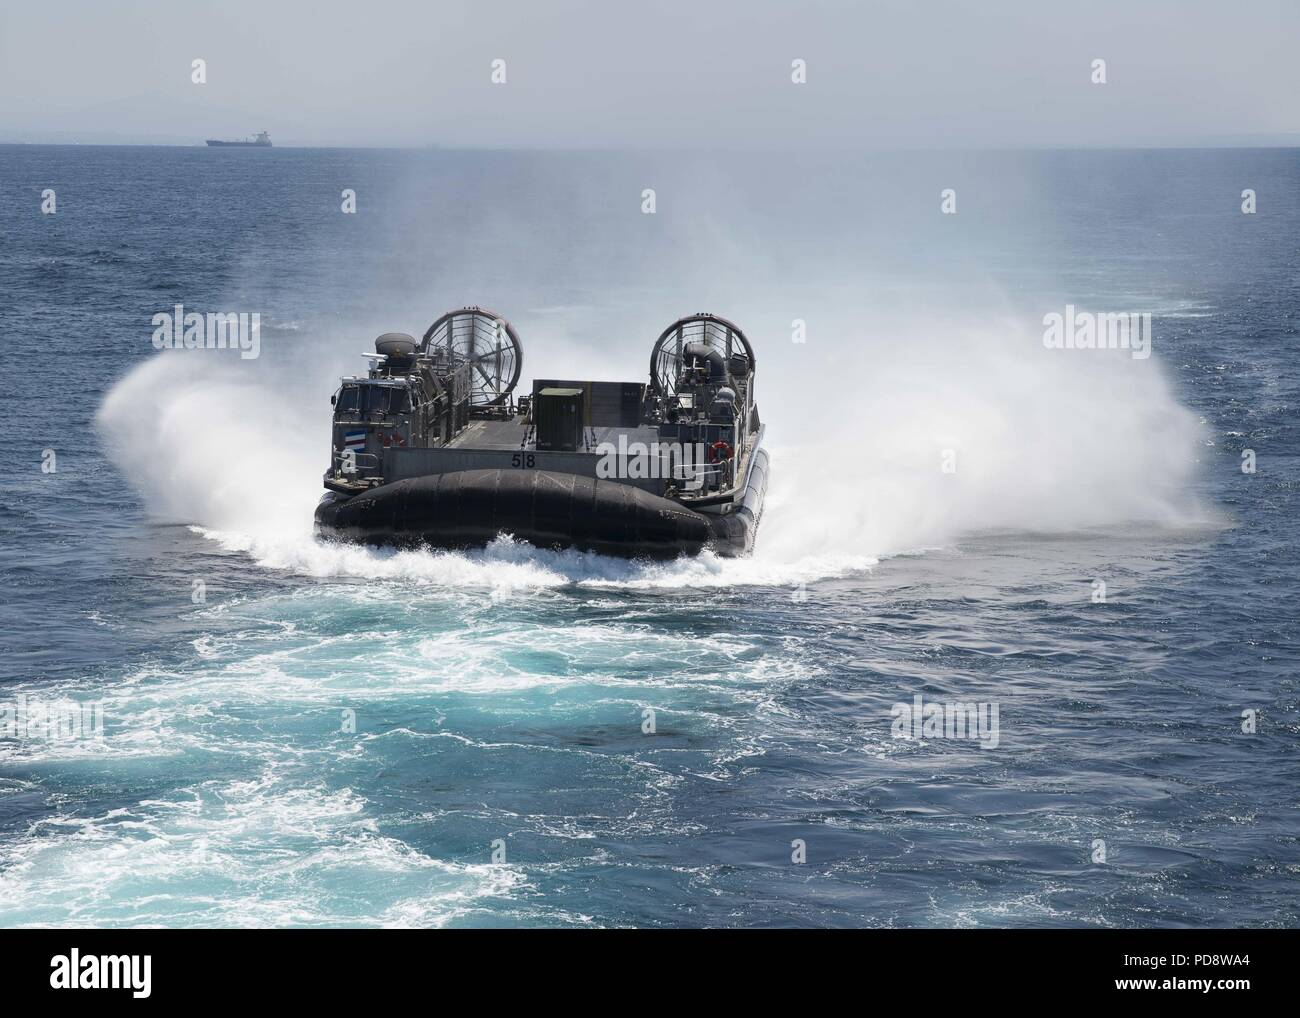 180703-N-XK809-118 PACIFIC OCEAN, (July 3, 2018) Landing craft air cushion (LCAC) 58, assigned to Assault Craft Unit (ACU) 5, approaches the well deck of the amphibious assault ship USS Bonhomme Richard (LHD 6), July 3, 2018. Bonhomme Richard is currently underway in the U.S. 3rd Fleet area of operations. (U.S. Navy photo by Mass Communication Specialist 3rd Class William Sykes). () - Stock Image